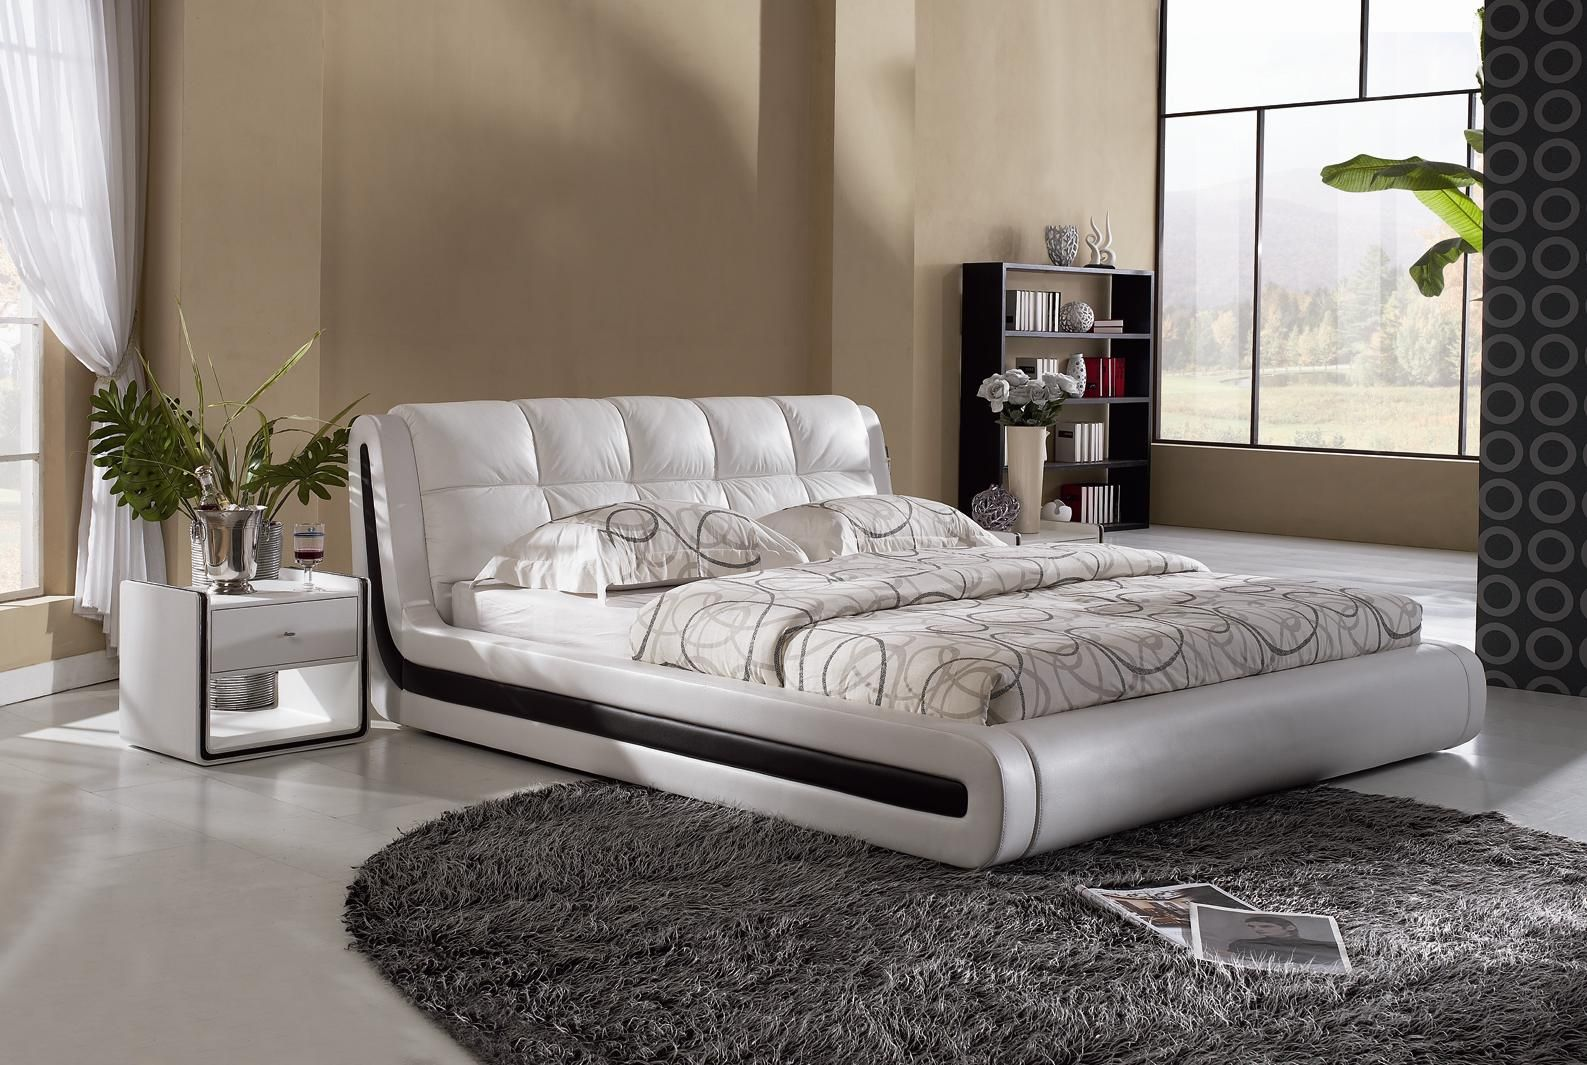 Modern bed designs home interior designer adult bedroom for New bedroom decoration